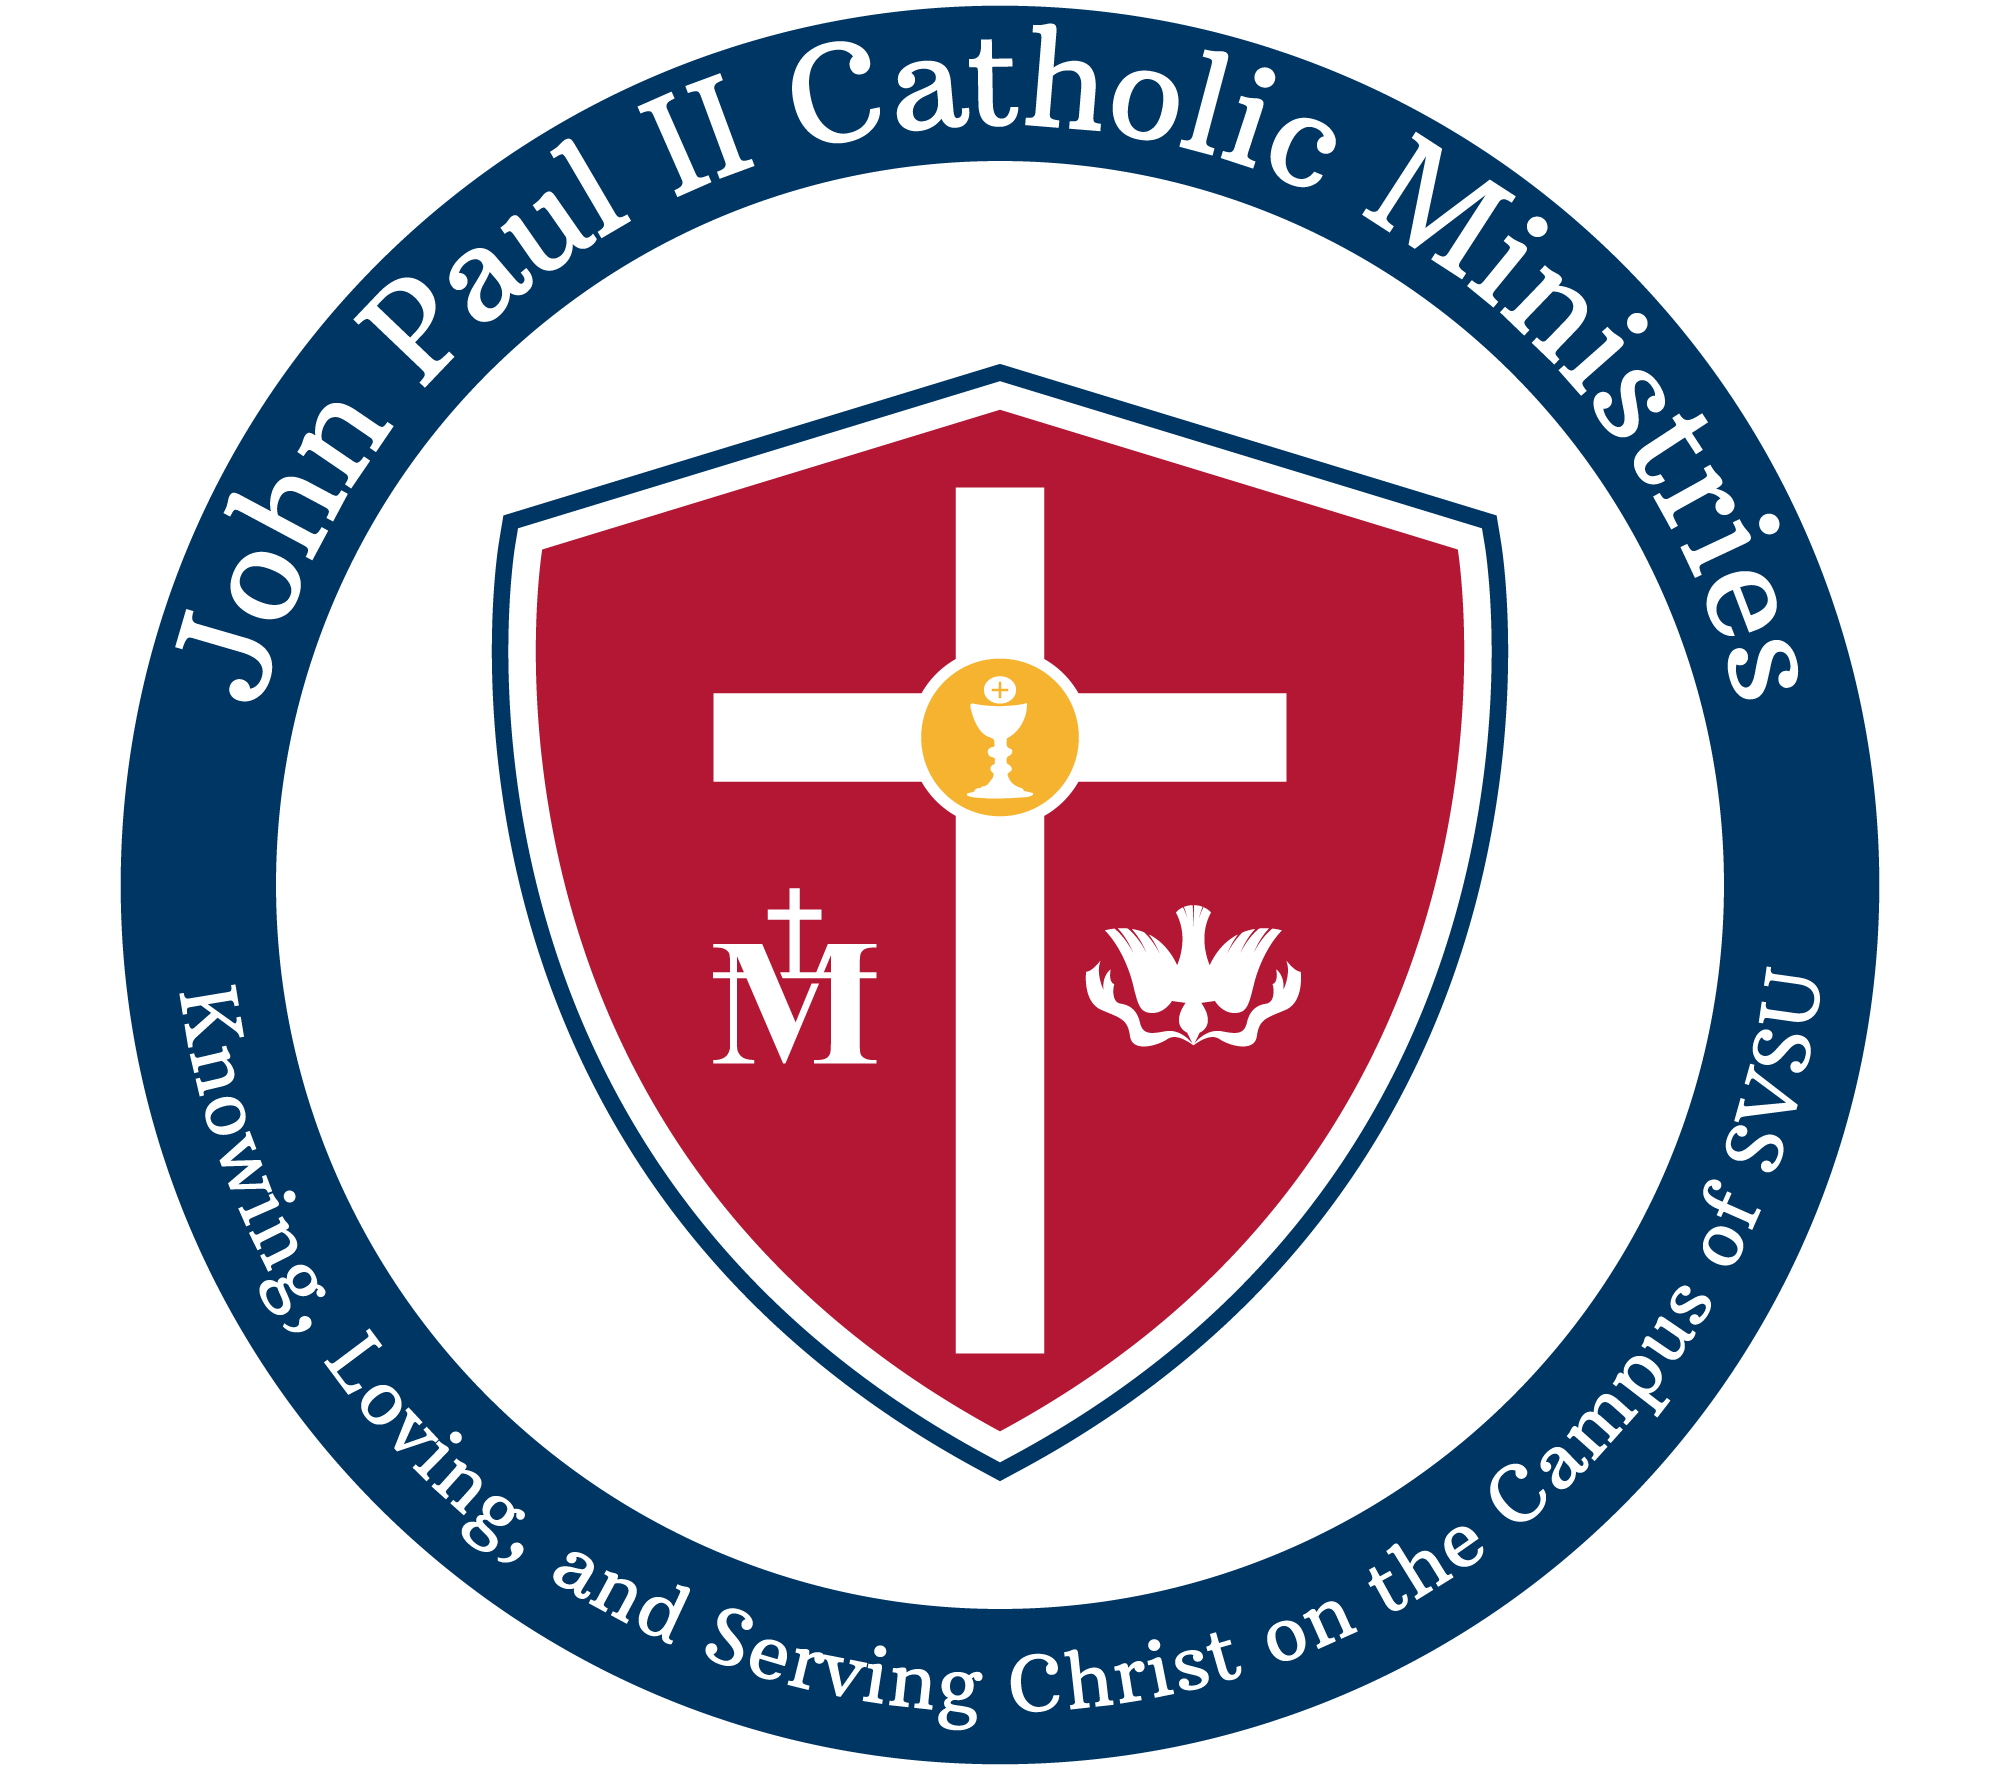 John Paul II Catholic Ministries